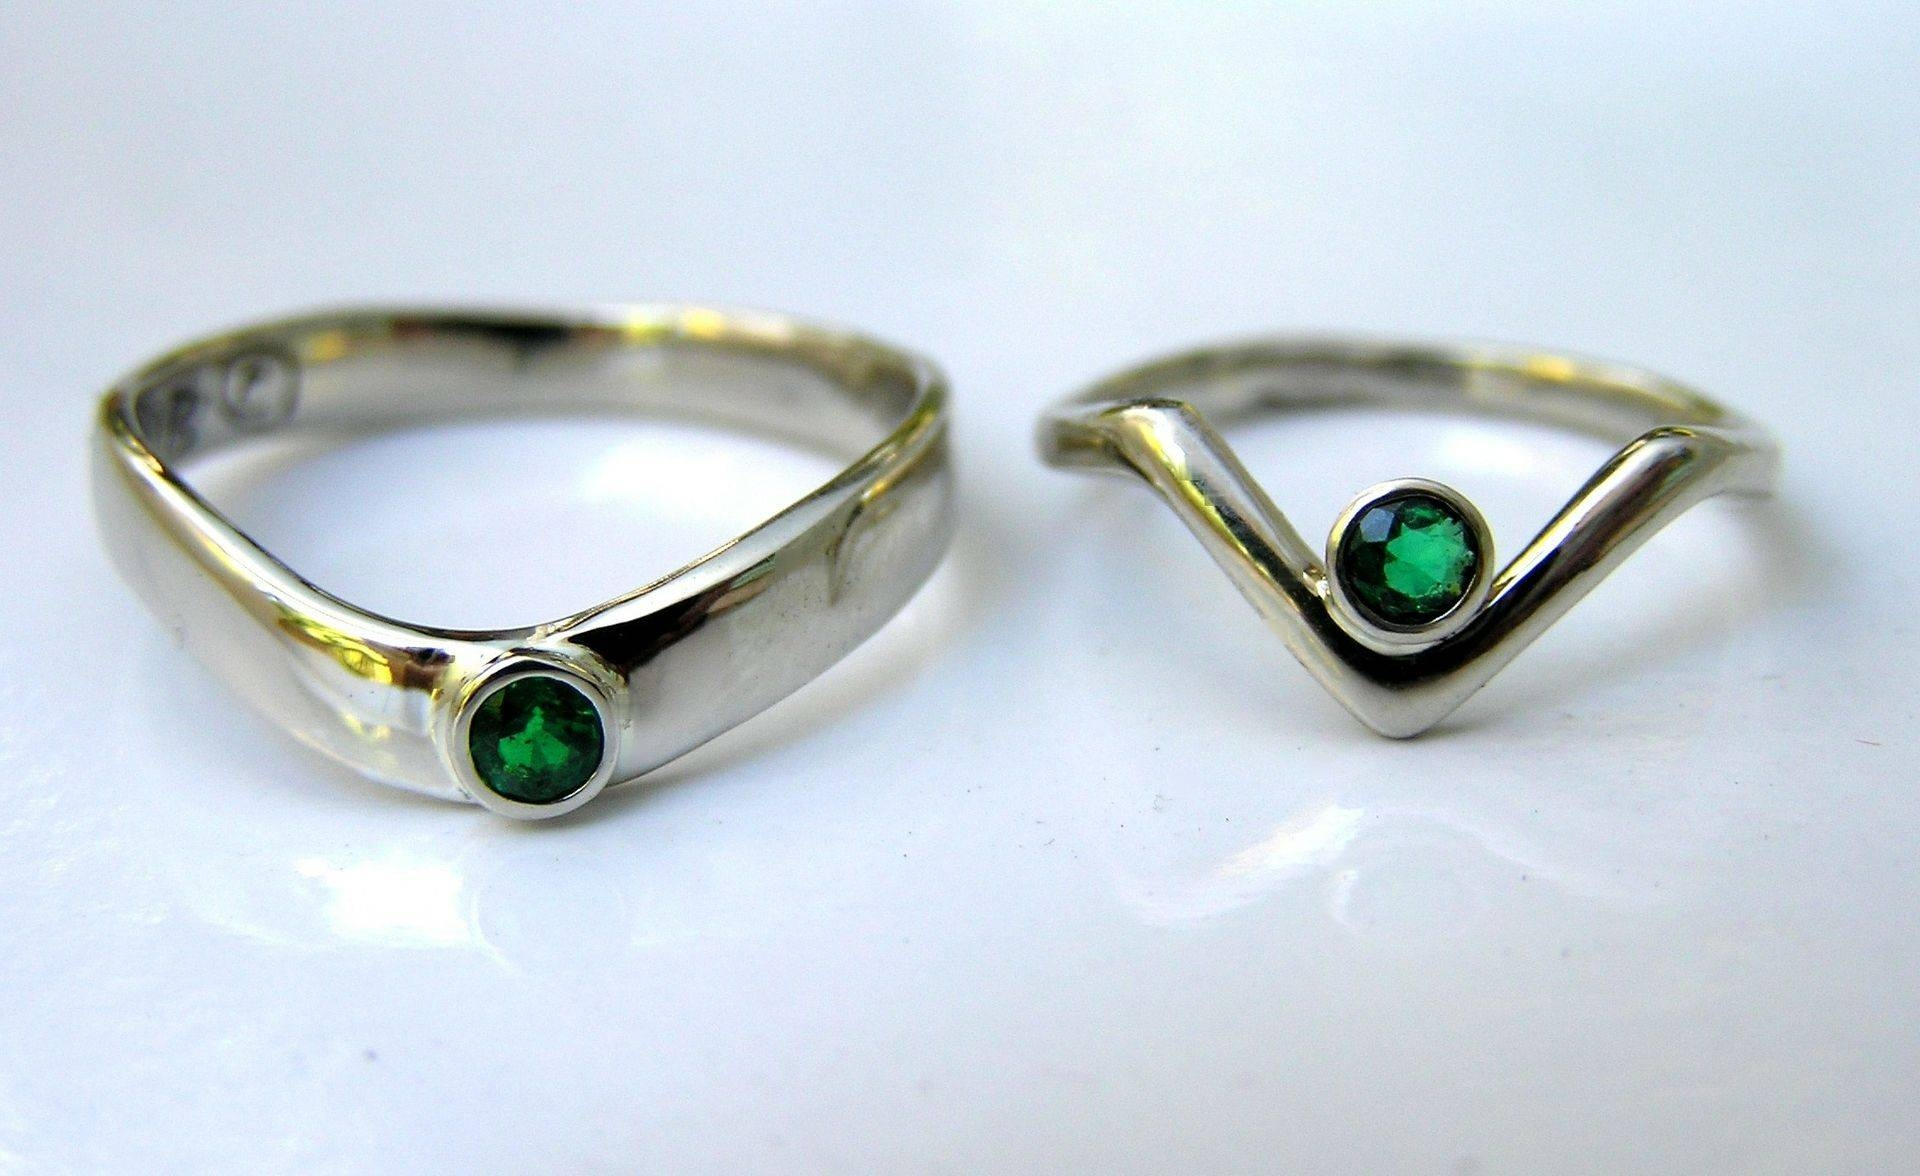 Hand Crafted His Hers Emerald Anniversary Rings – Handmade Custom Inside 2017 His And Hers Anniversary Rings (Gallery 8 of 25)